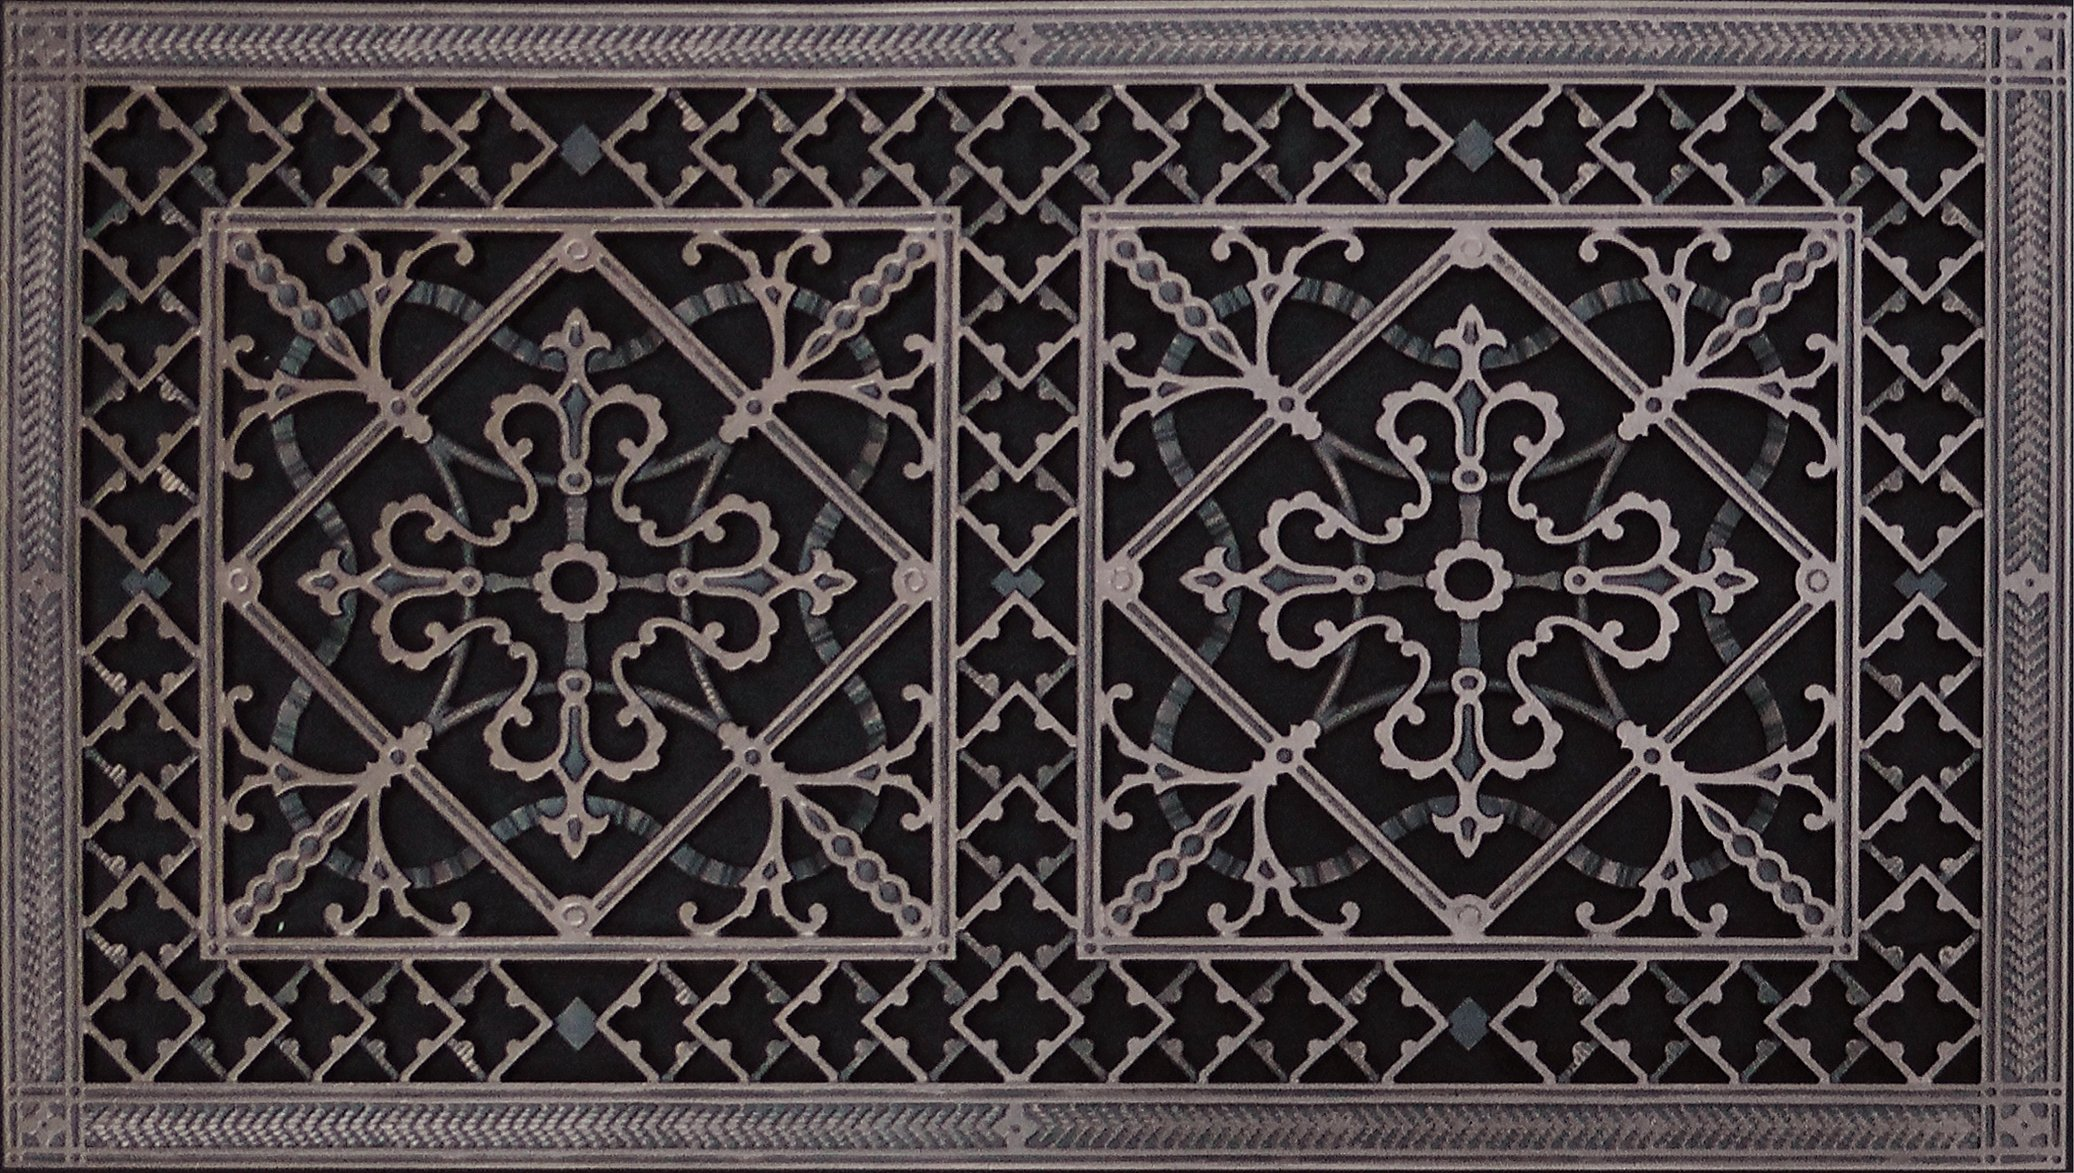 Decorative Grille, Vent Cover, or Return Register. Made of Urethane Resin to fit over a 16''x30'' duct or opening. Total size of vent is 18''x32''x3/8'', for wall and ceiling grilles (not for floor use).